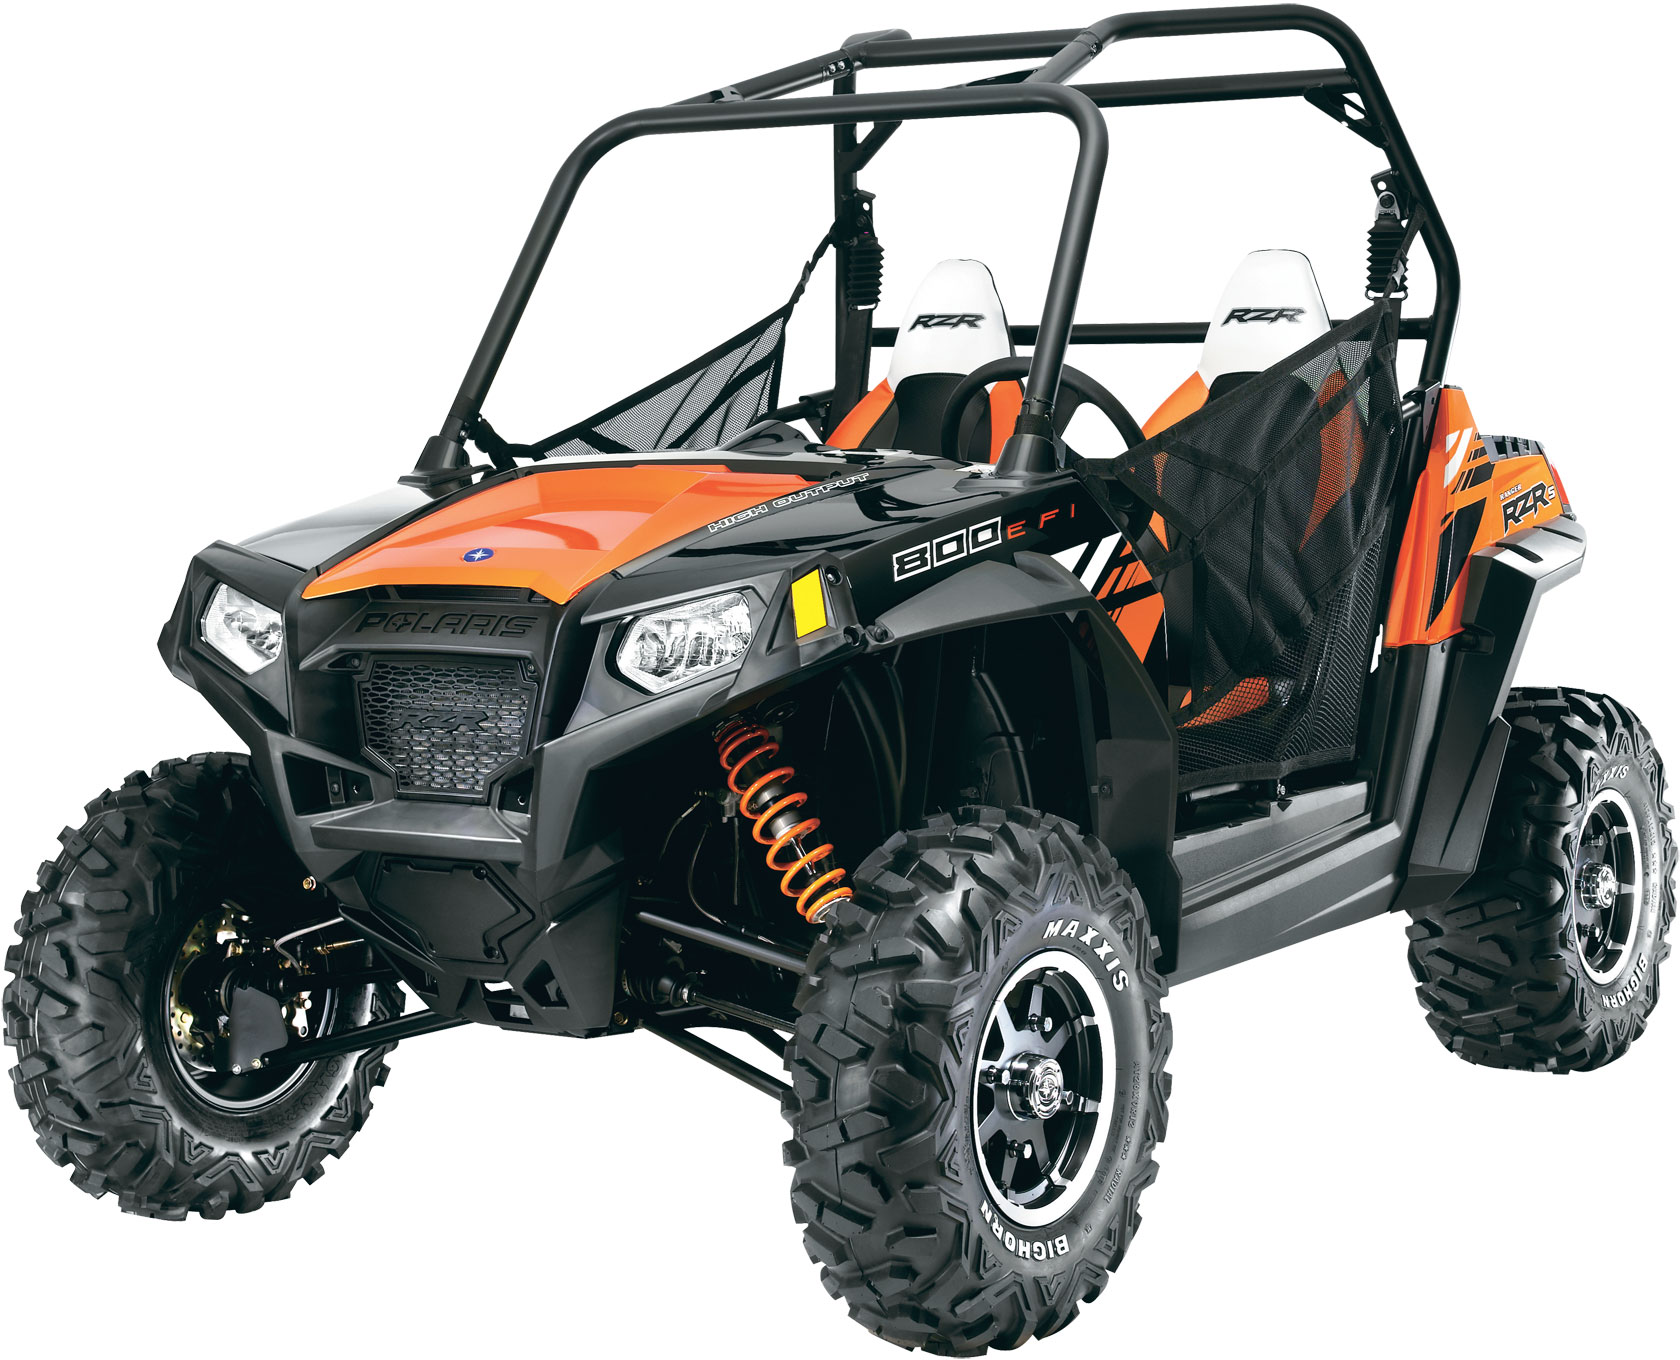 2011 Polaris Ranger Rzr S 800 Black Orange Madness Le